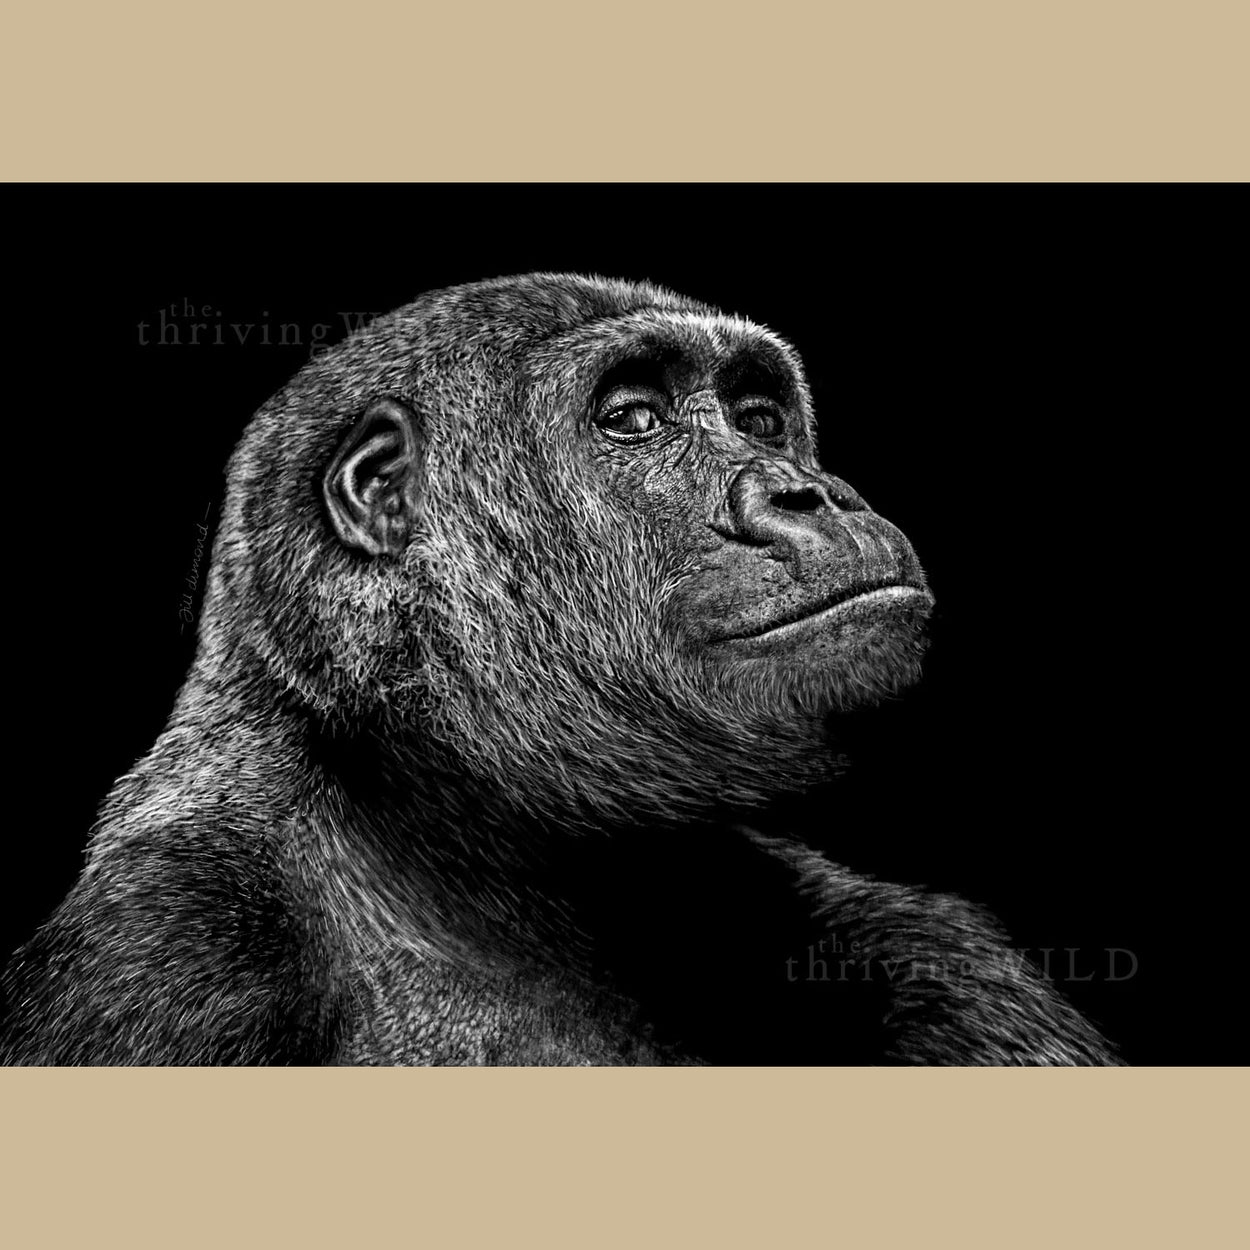 Gahiji the Gorilla Art Prints